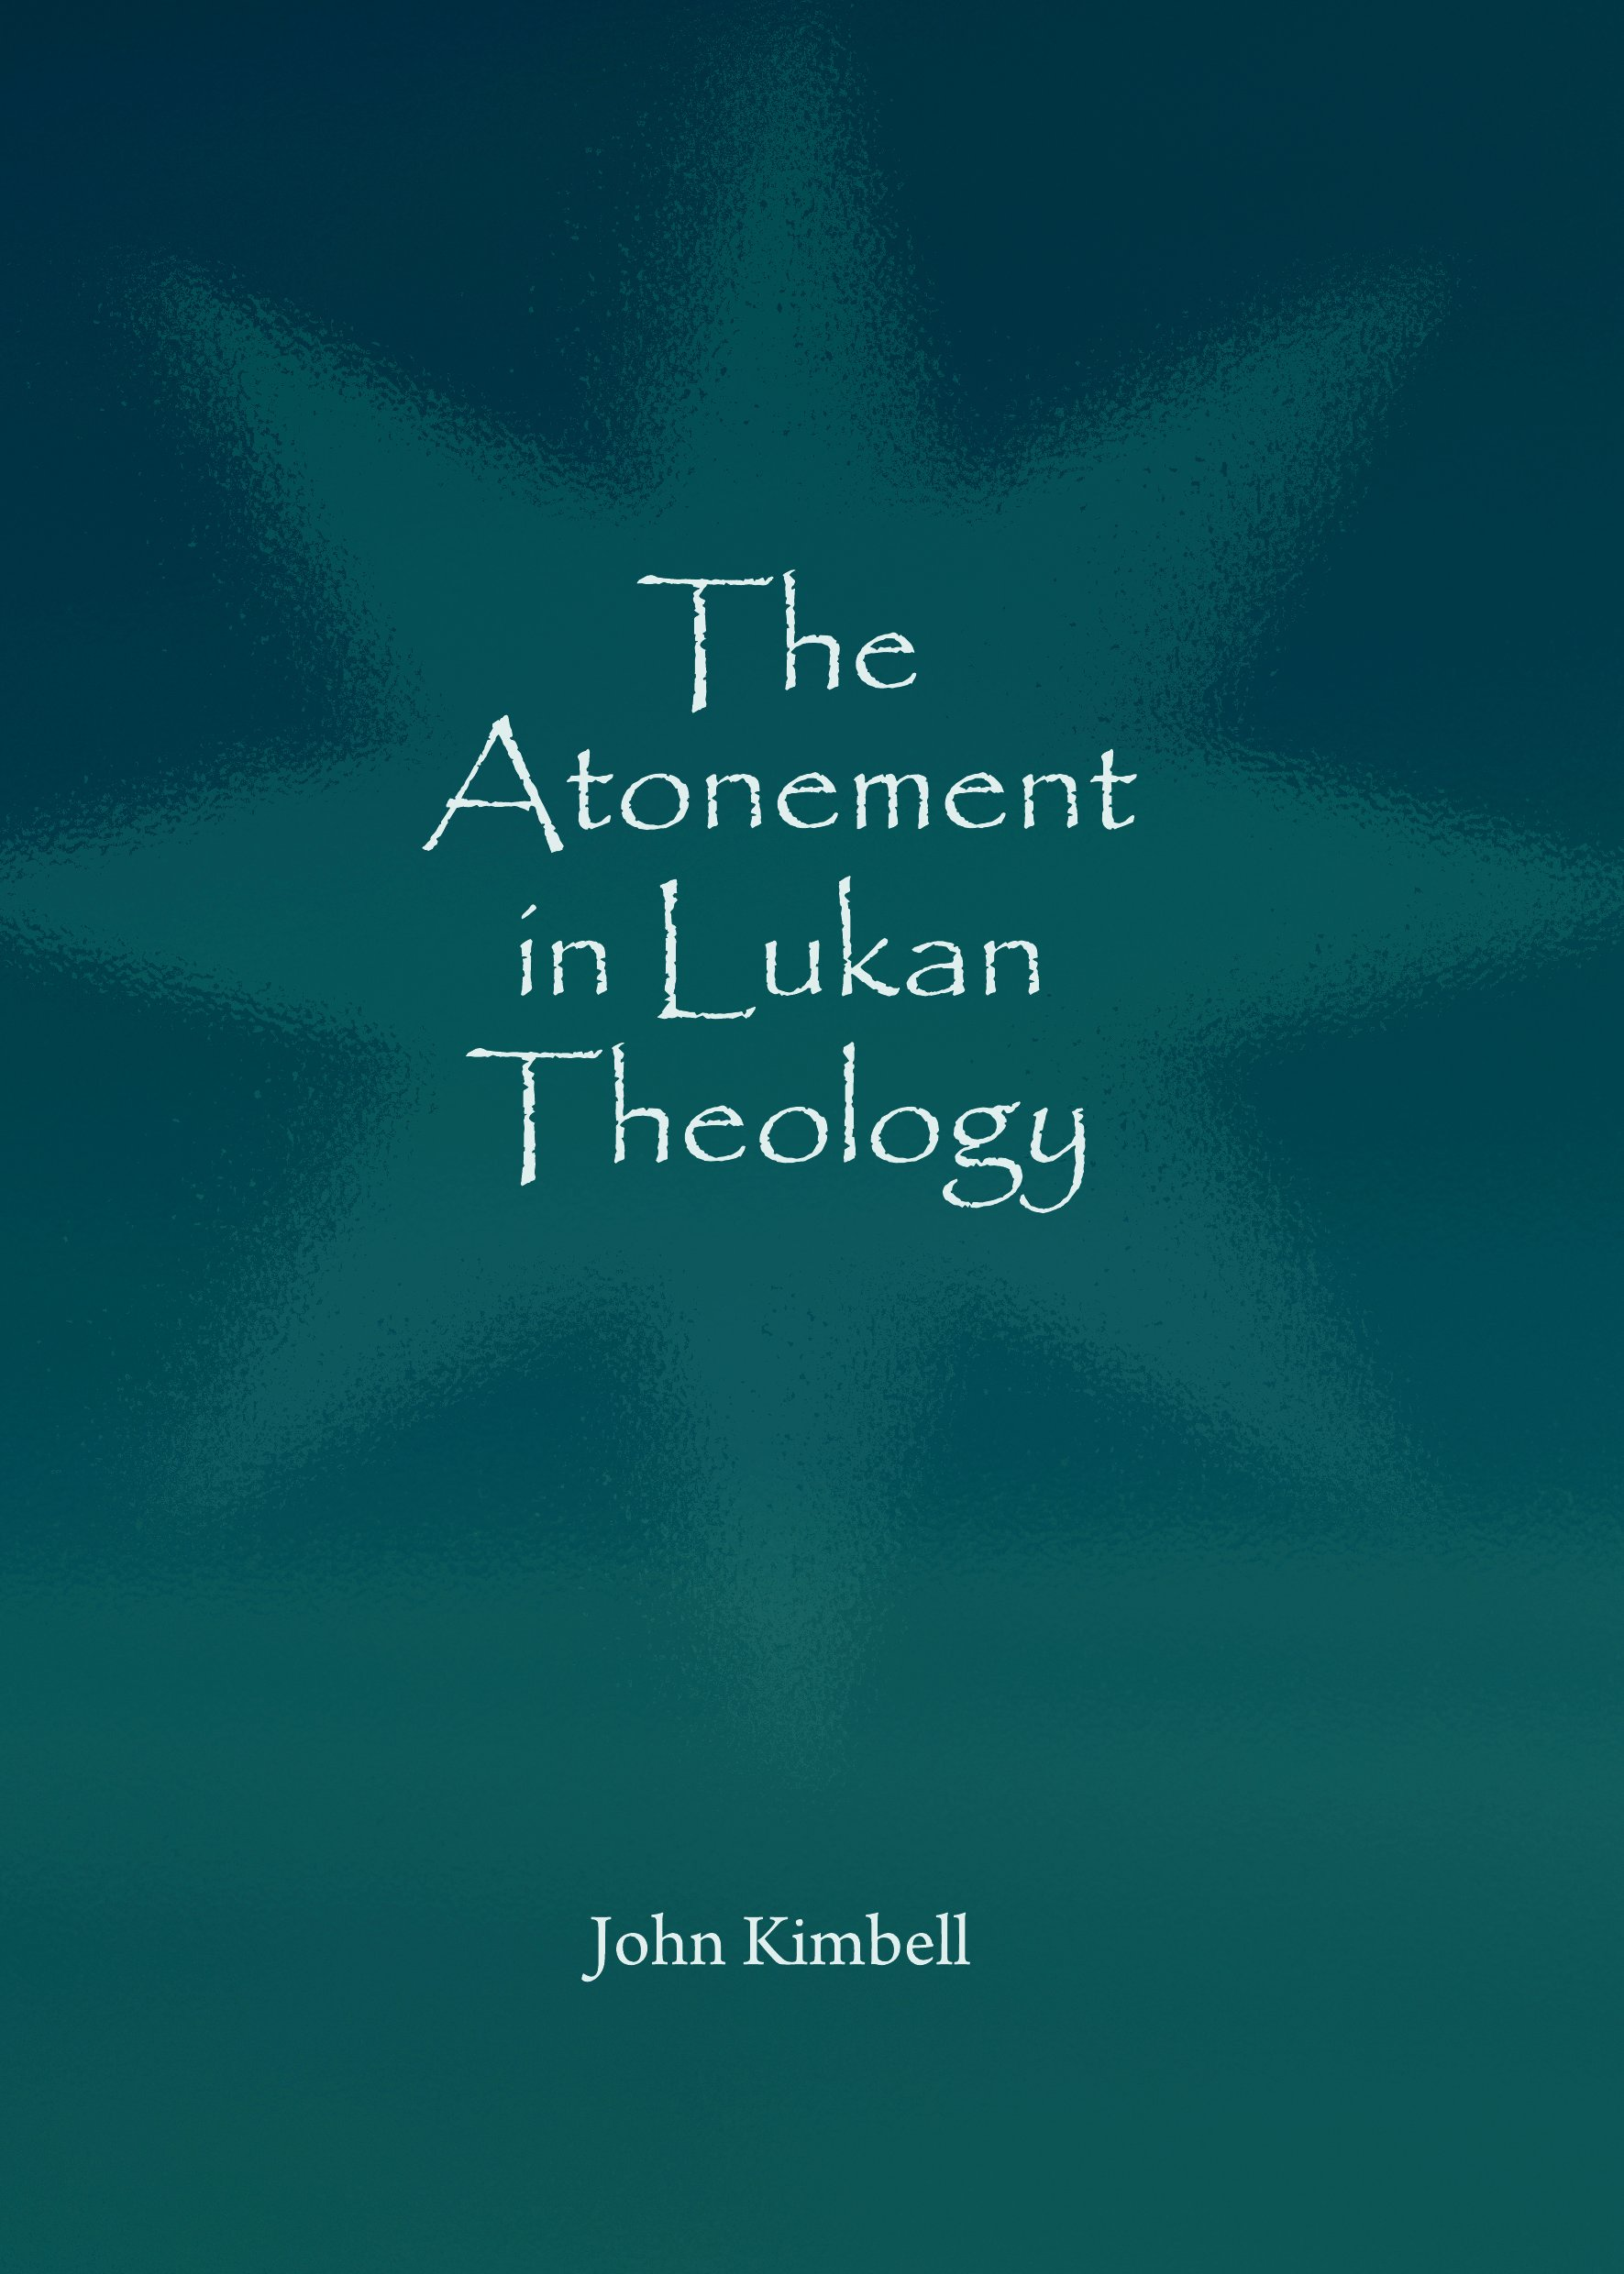 The Atonement in Lukan Theology